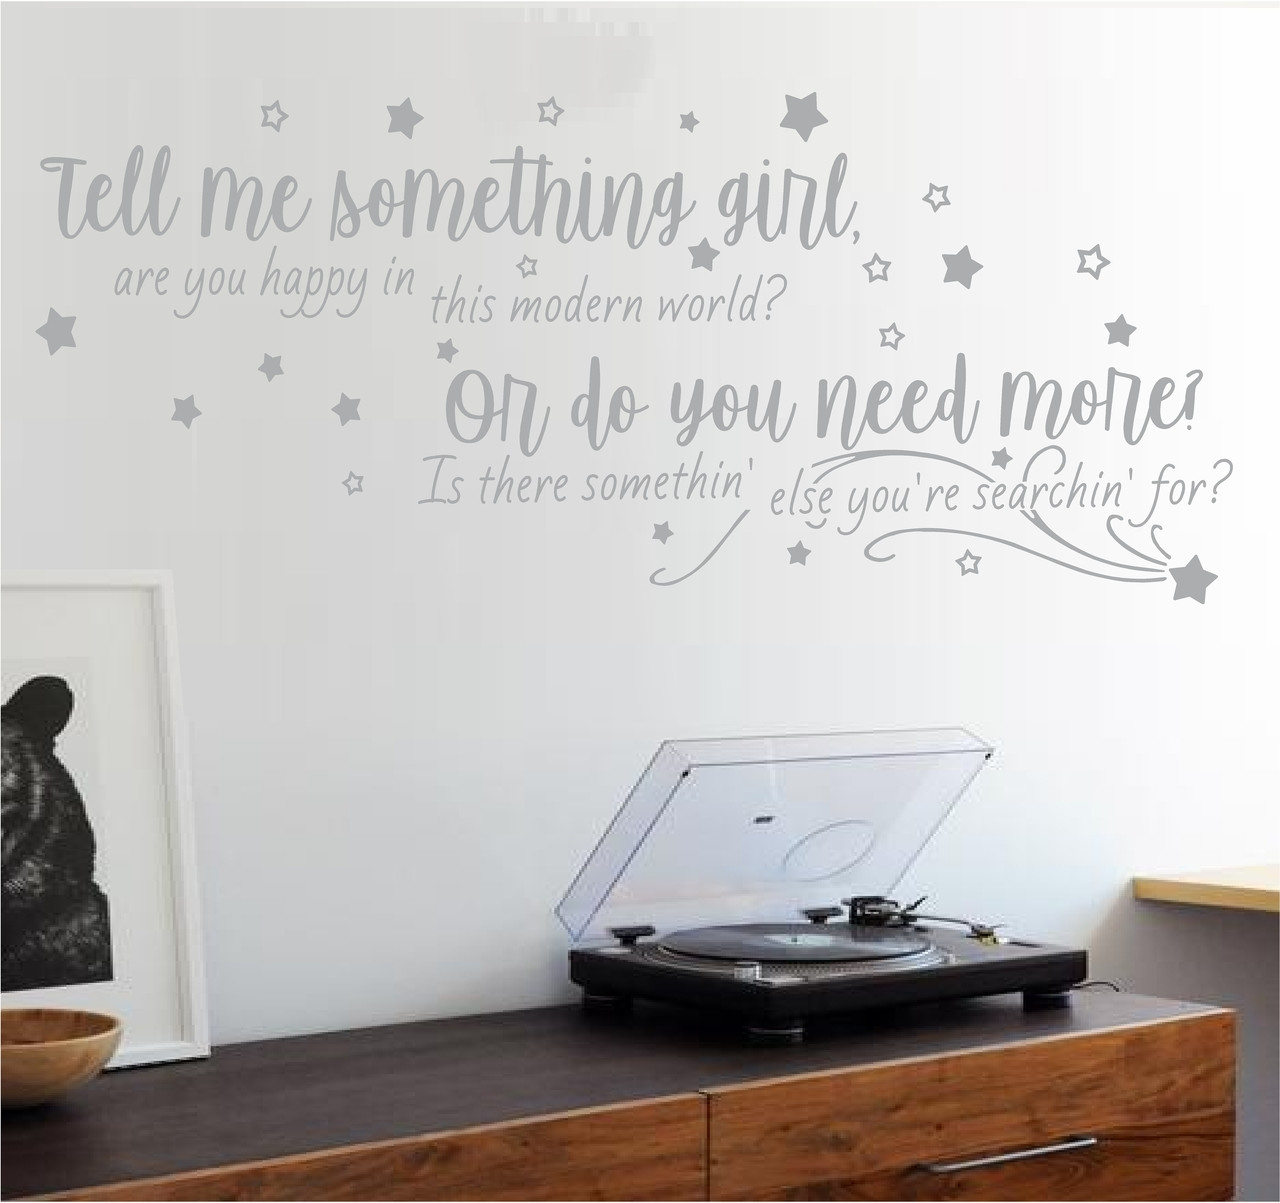 Shallow lyrics Wall Art from A Star Is Born